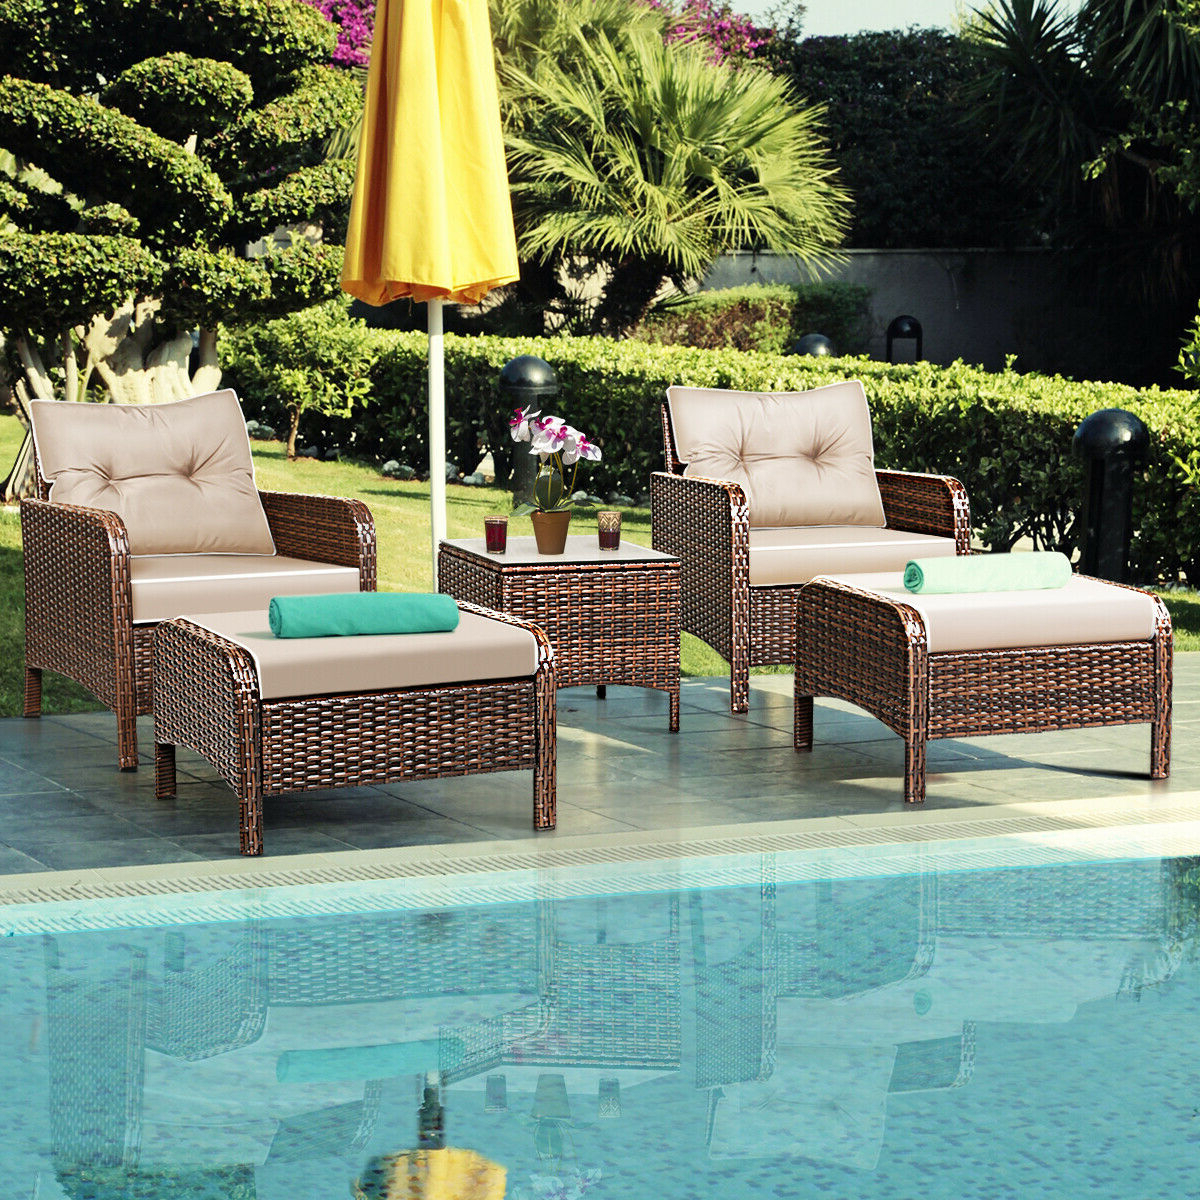 2019 Costway 5 Pcs Rattan Wicker Furniture Set Sofa Ottoman W/brown Cushion  Patio Garden Yard With Regard To Outdoor Adjustable Rattan Wicker Recliner Chairs With Cushion (View 1 of 25)